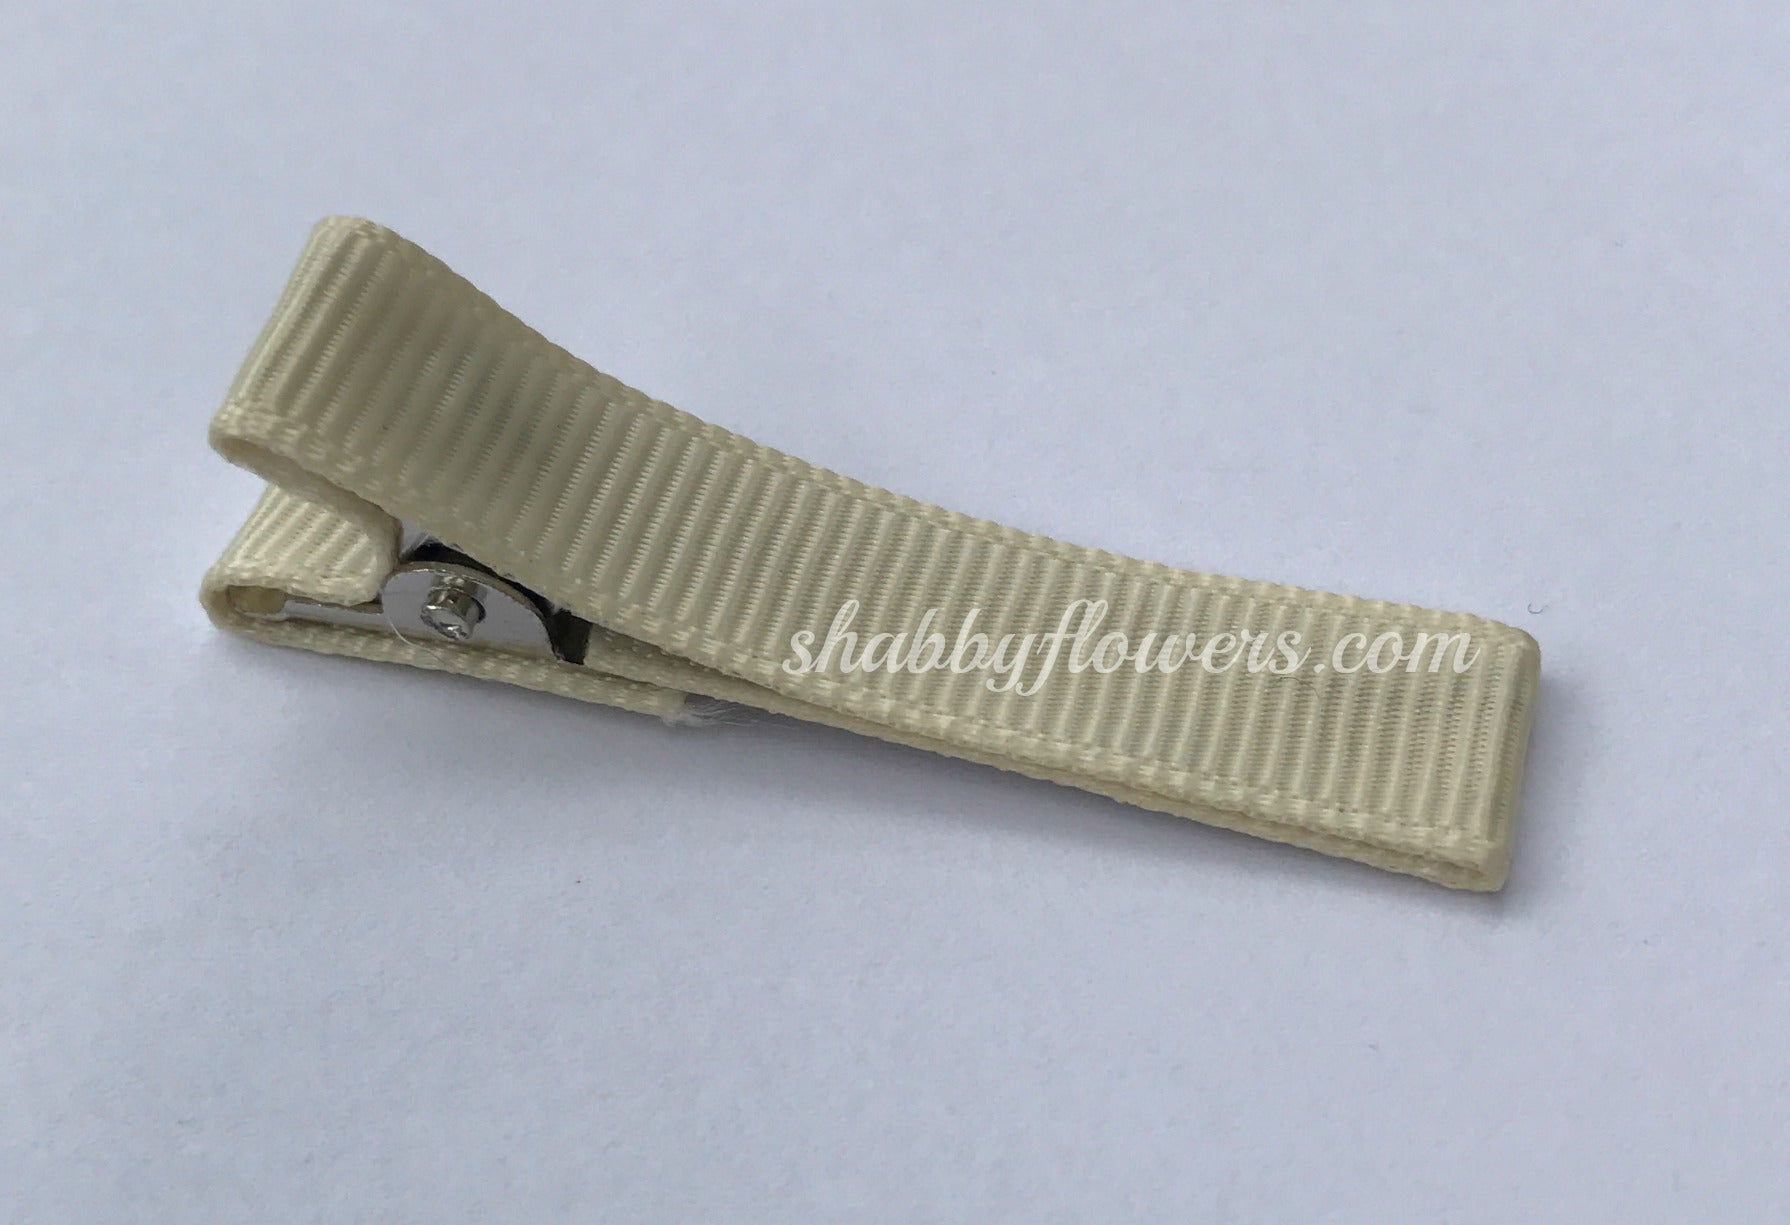 Lined Clip in Ivory - shabbyflowers.com